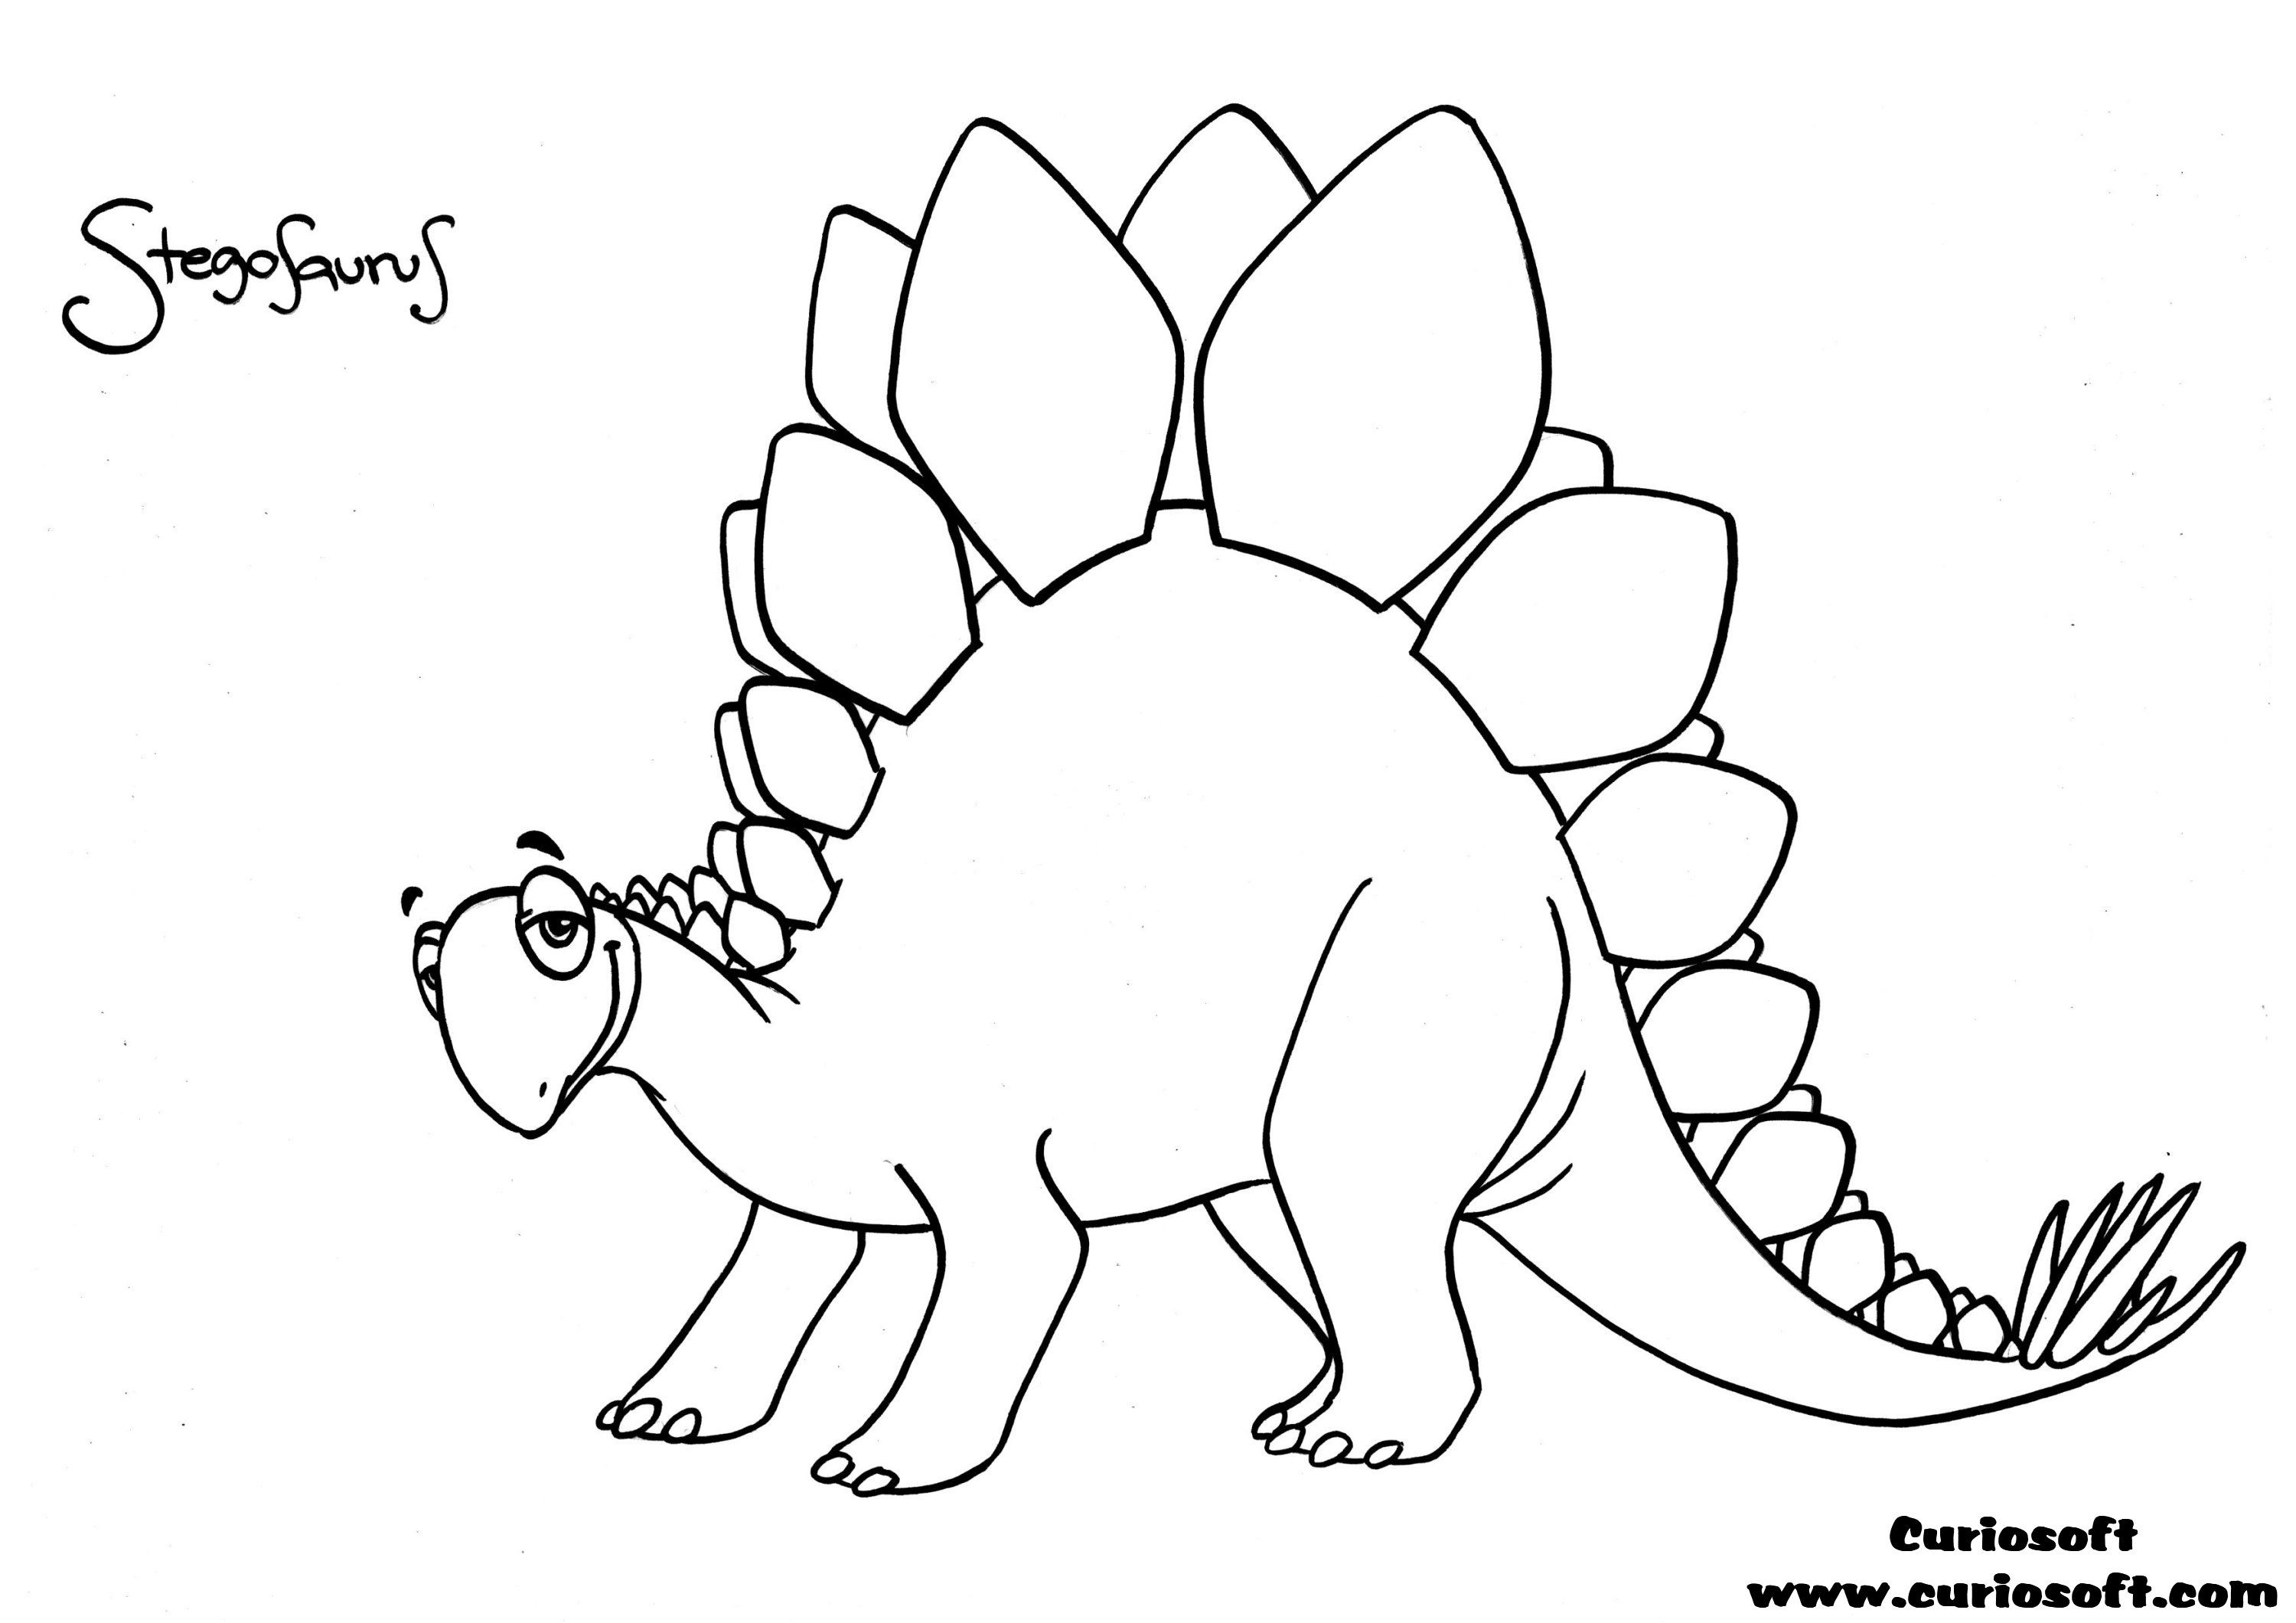 Dinosaurs coloring games - Good Stegosaurus Coloring Pages 78 With Additional Coloring For Kids With Stegosaurus Coloring Pages